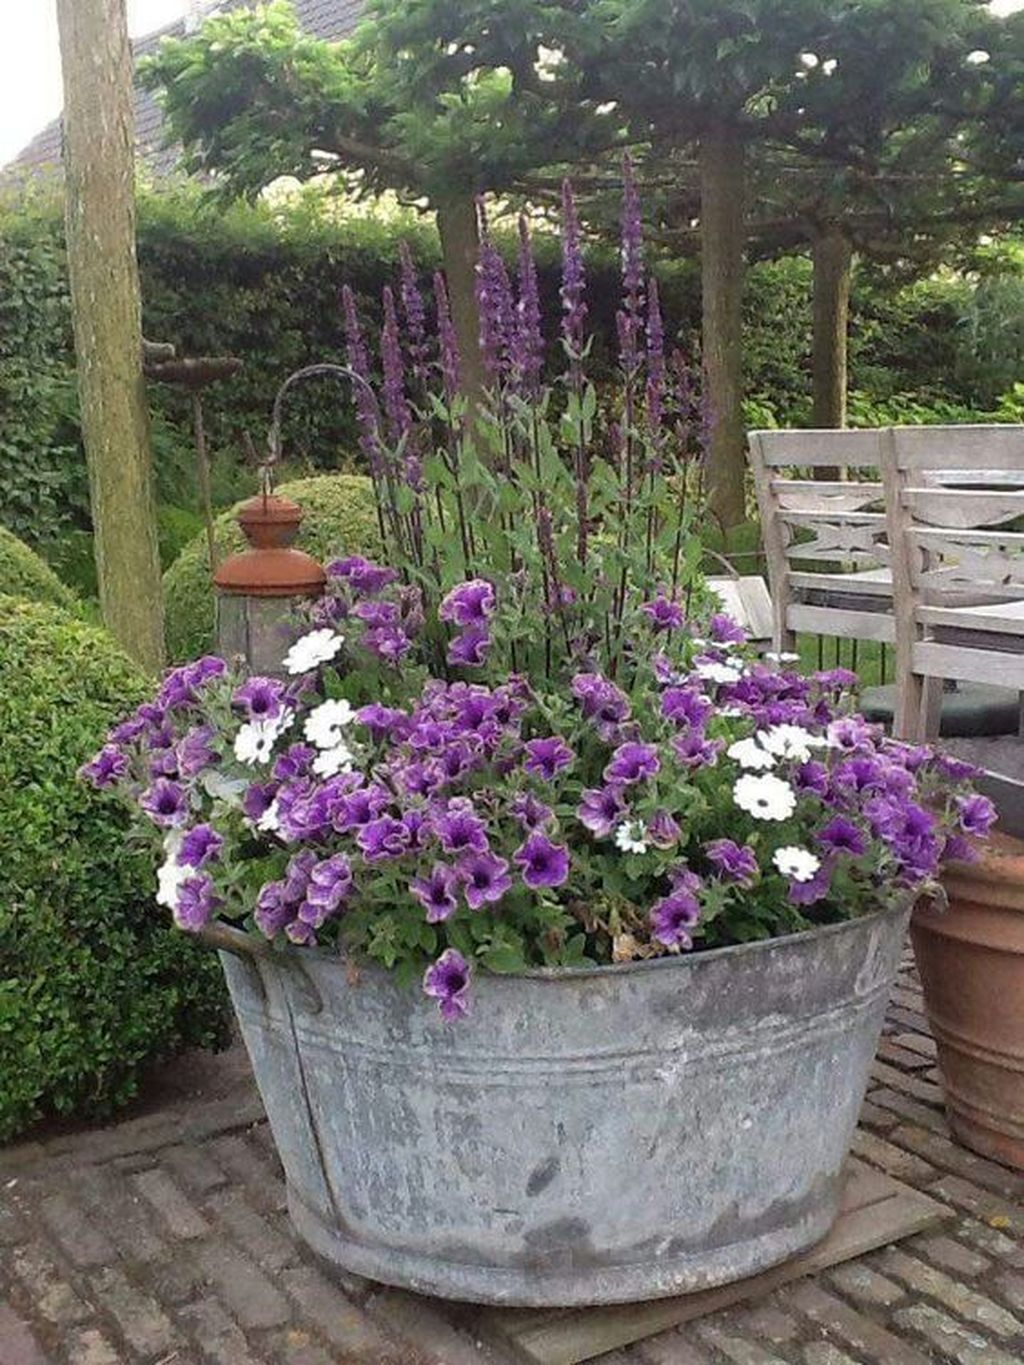 Stunning Backyard Flower Garden Ideas You Should Copy Now 15